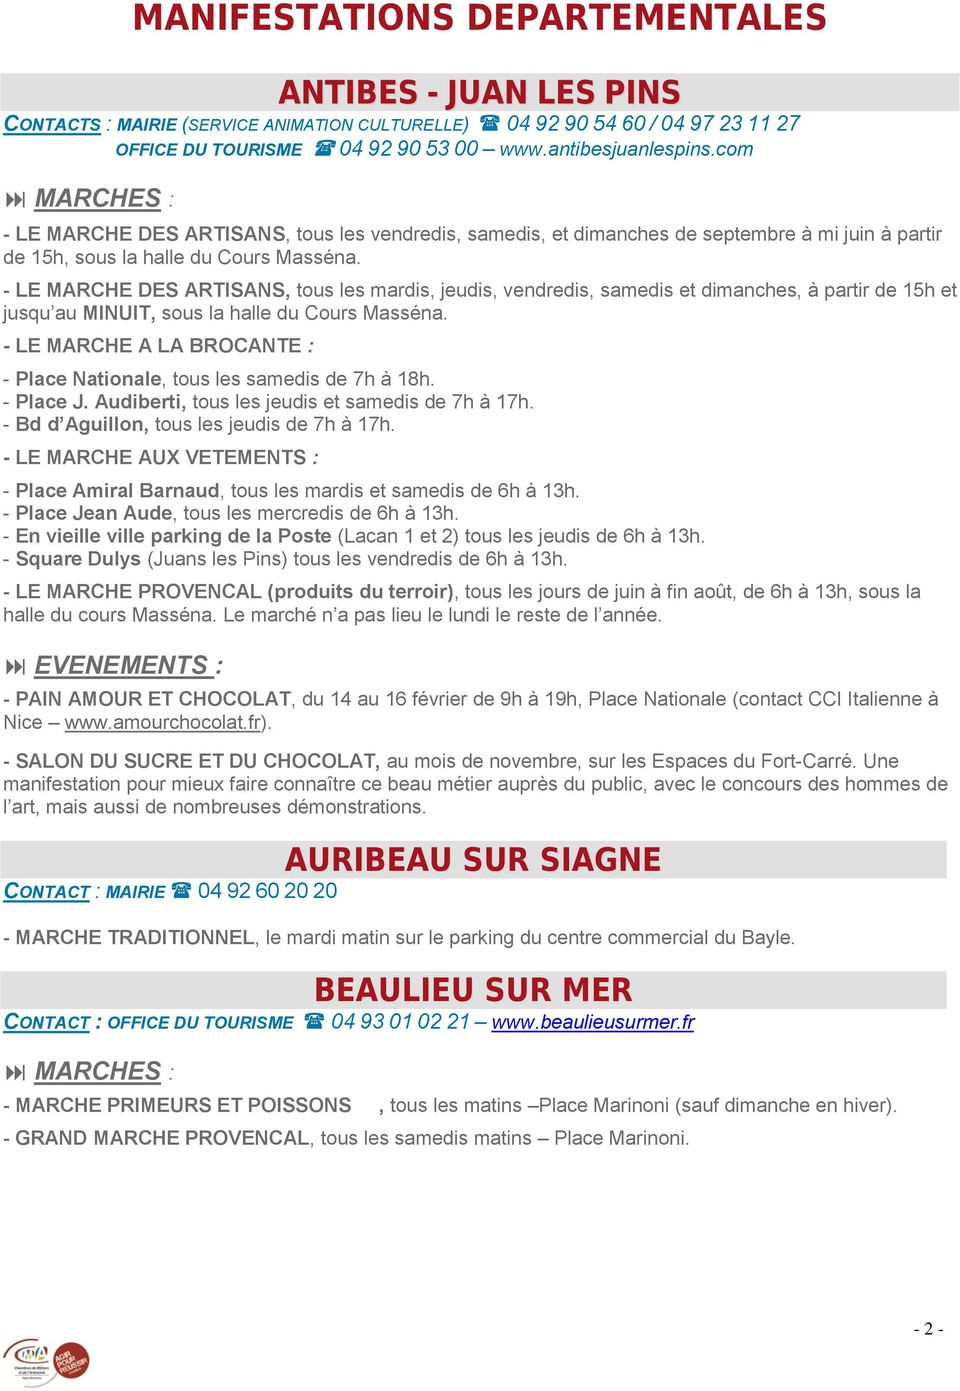 Manifestations departementales pdf - Beaulieu sur mer office du tourisme ...